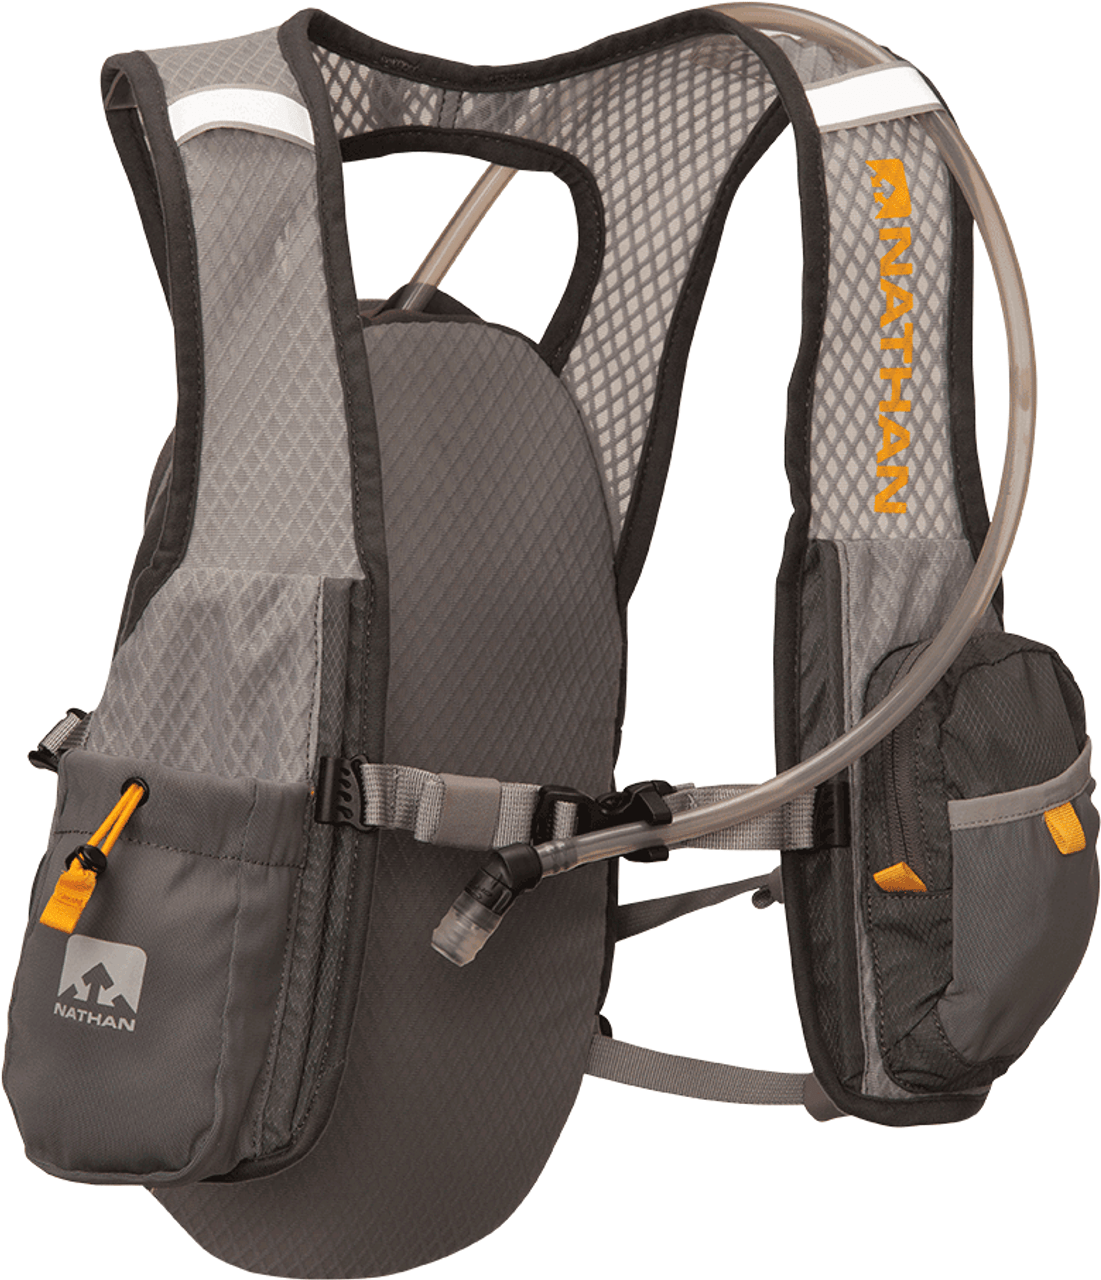 17d9b0d743 Nathan HPL #020 2.0 L Hydration Backpack - Gear West Ski and Run